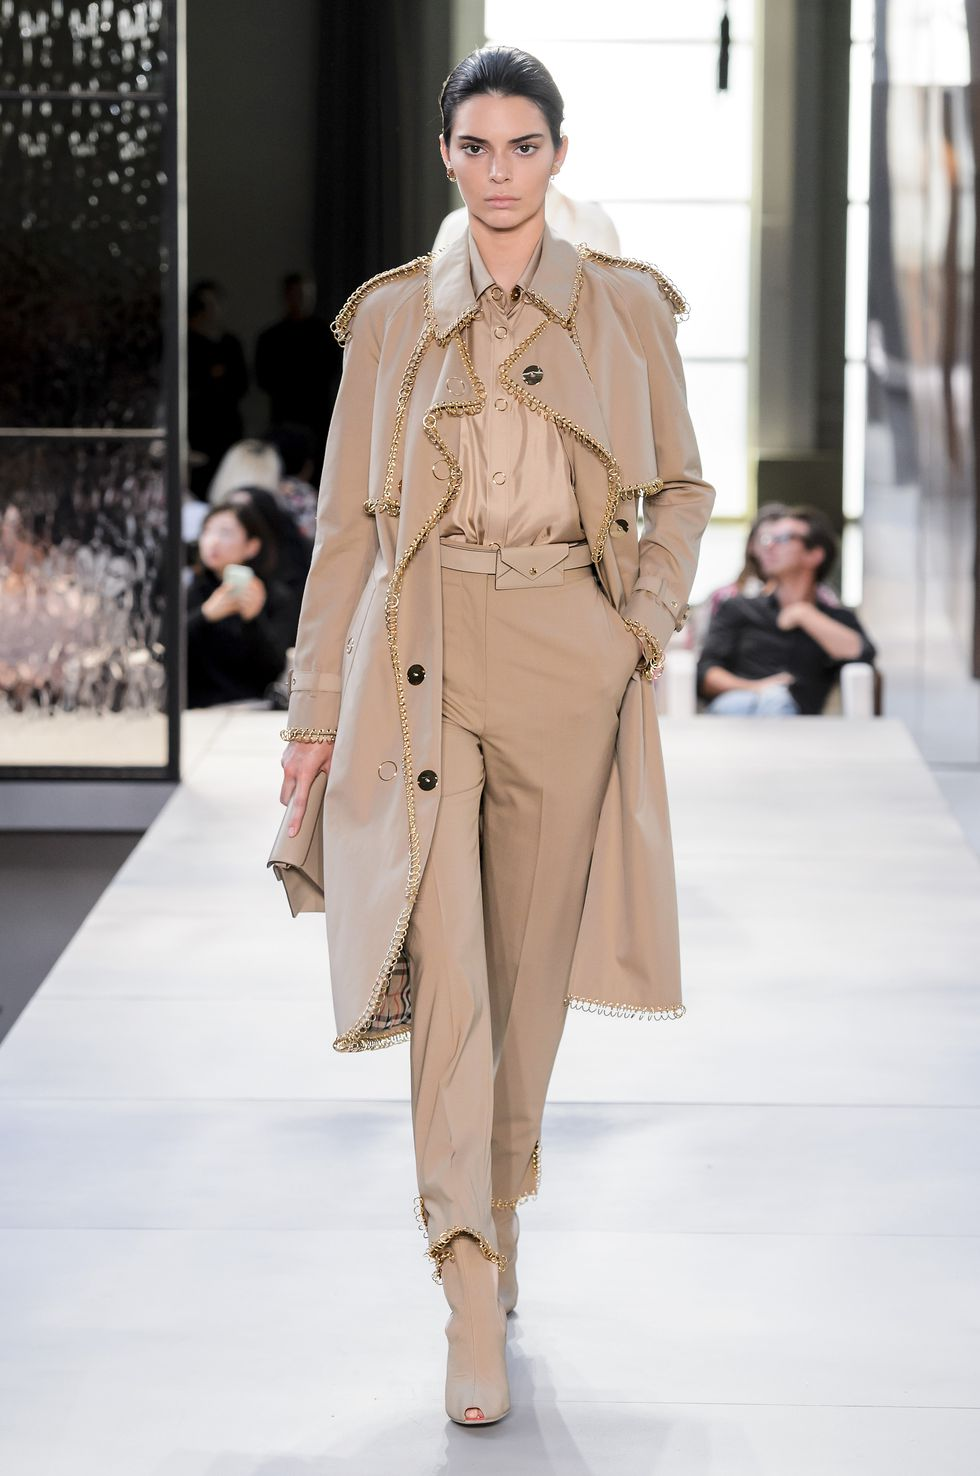 Top Spring Trends For 2019 Image Source